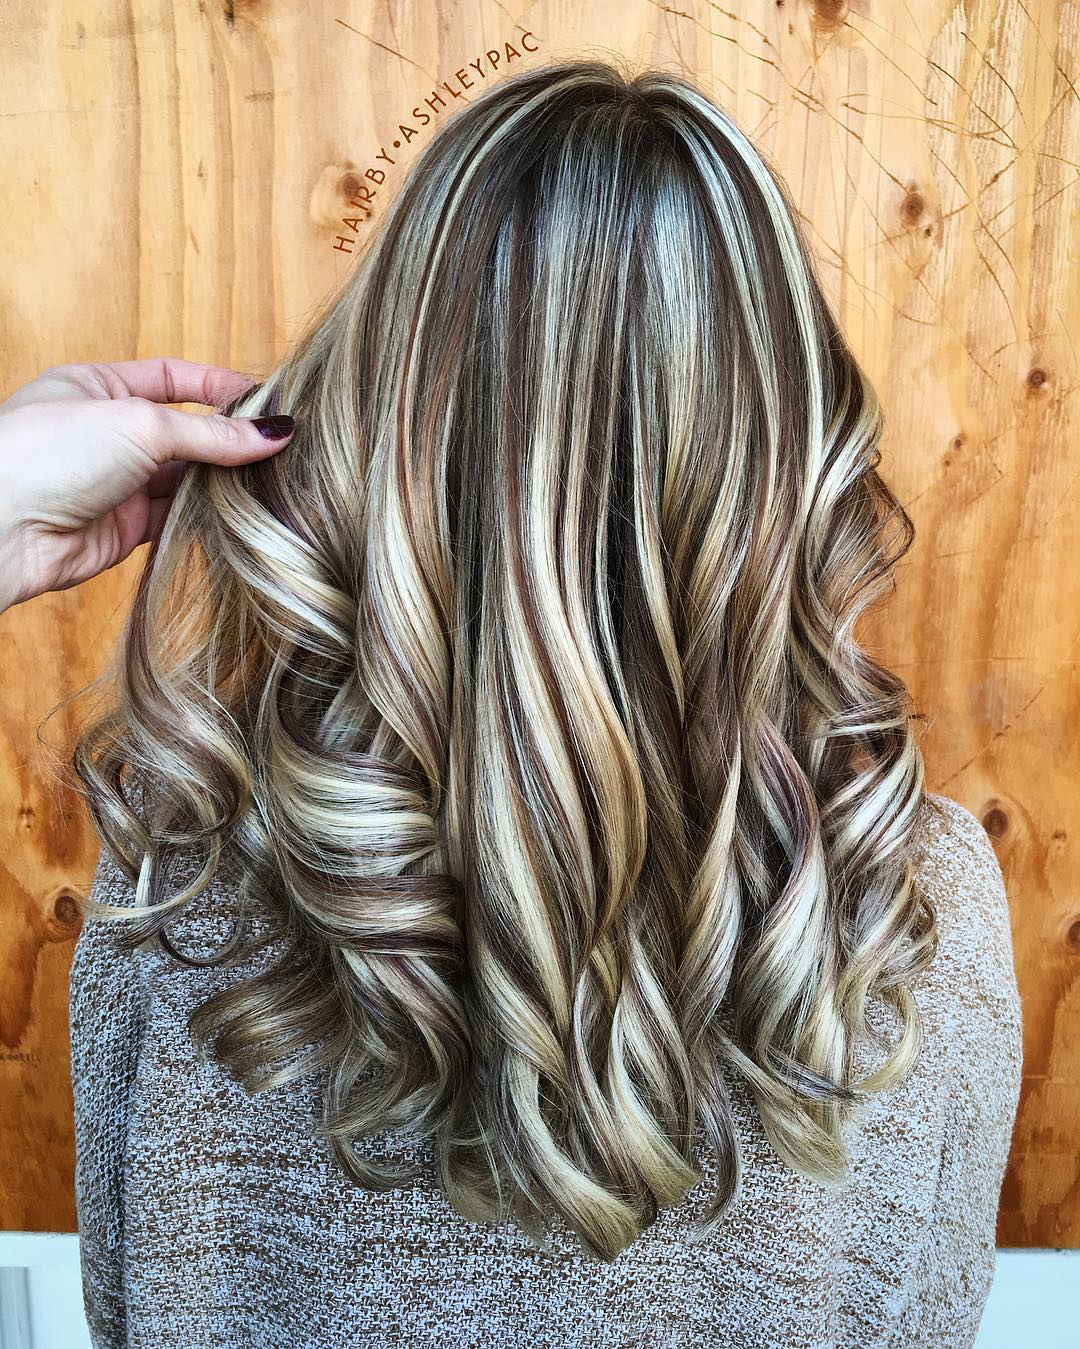 Highlights Blond 50 Light Brown Hair Color Ideas With Highlights And Lowlights